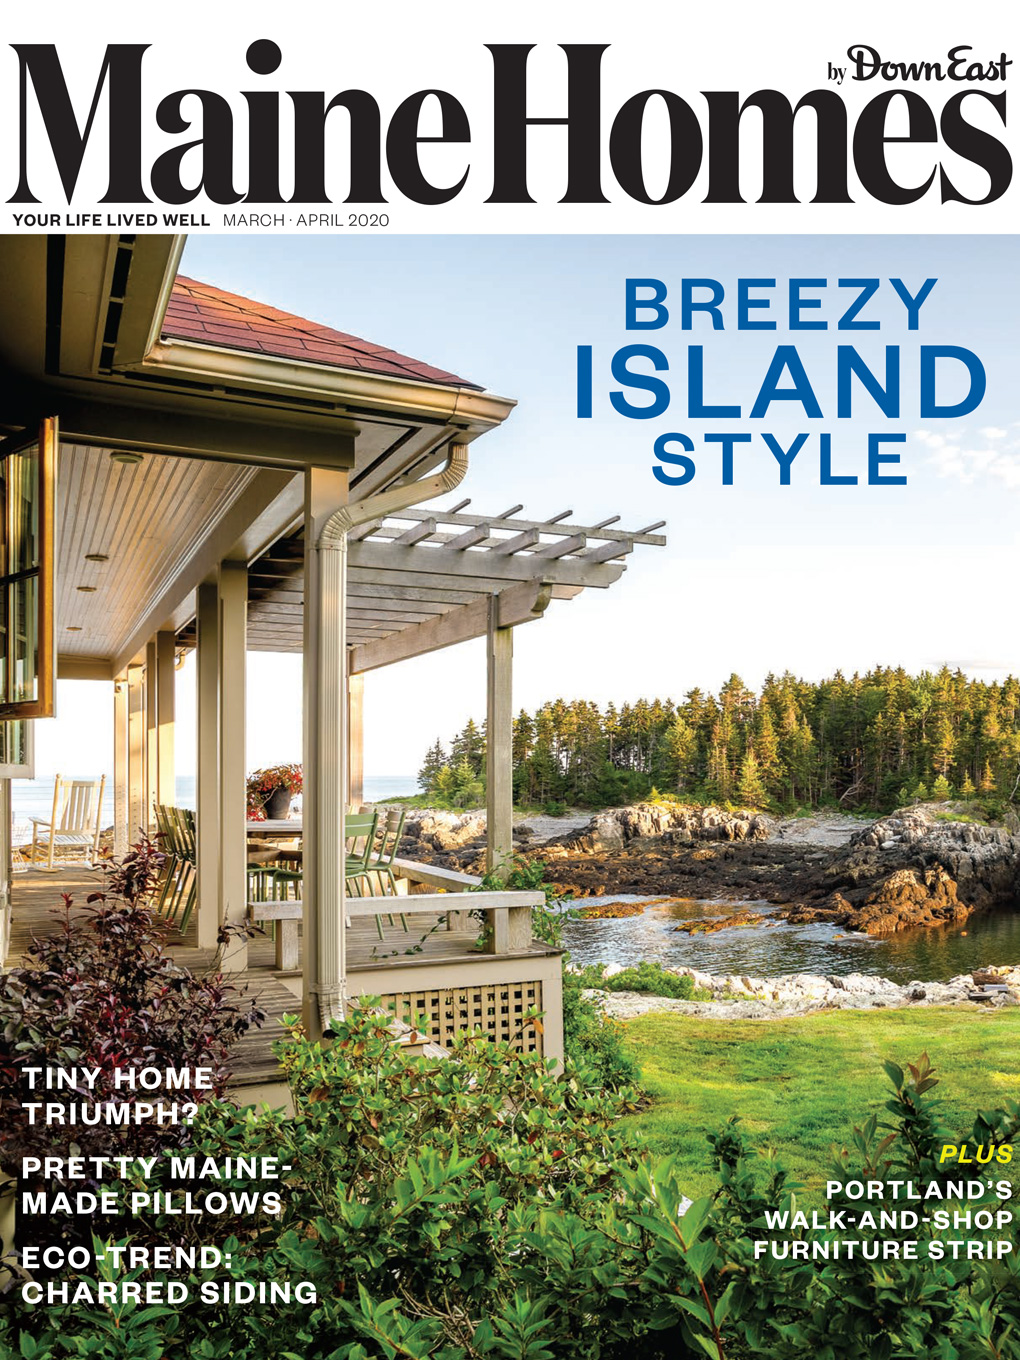 March/April 2020 Maine Homes by Down East magazine